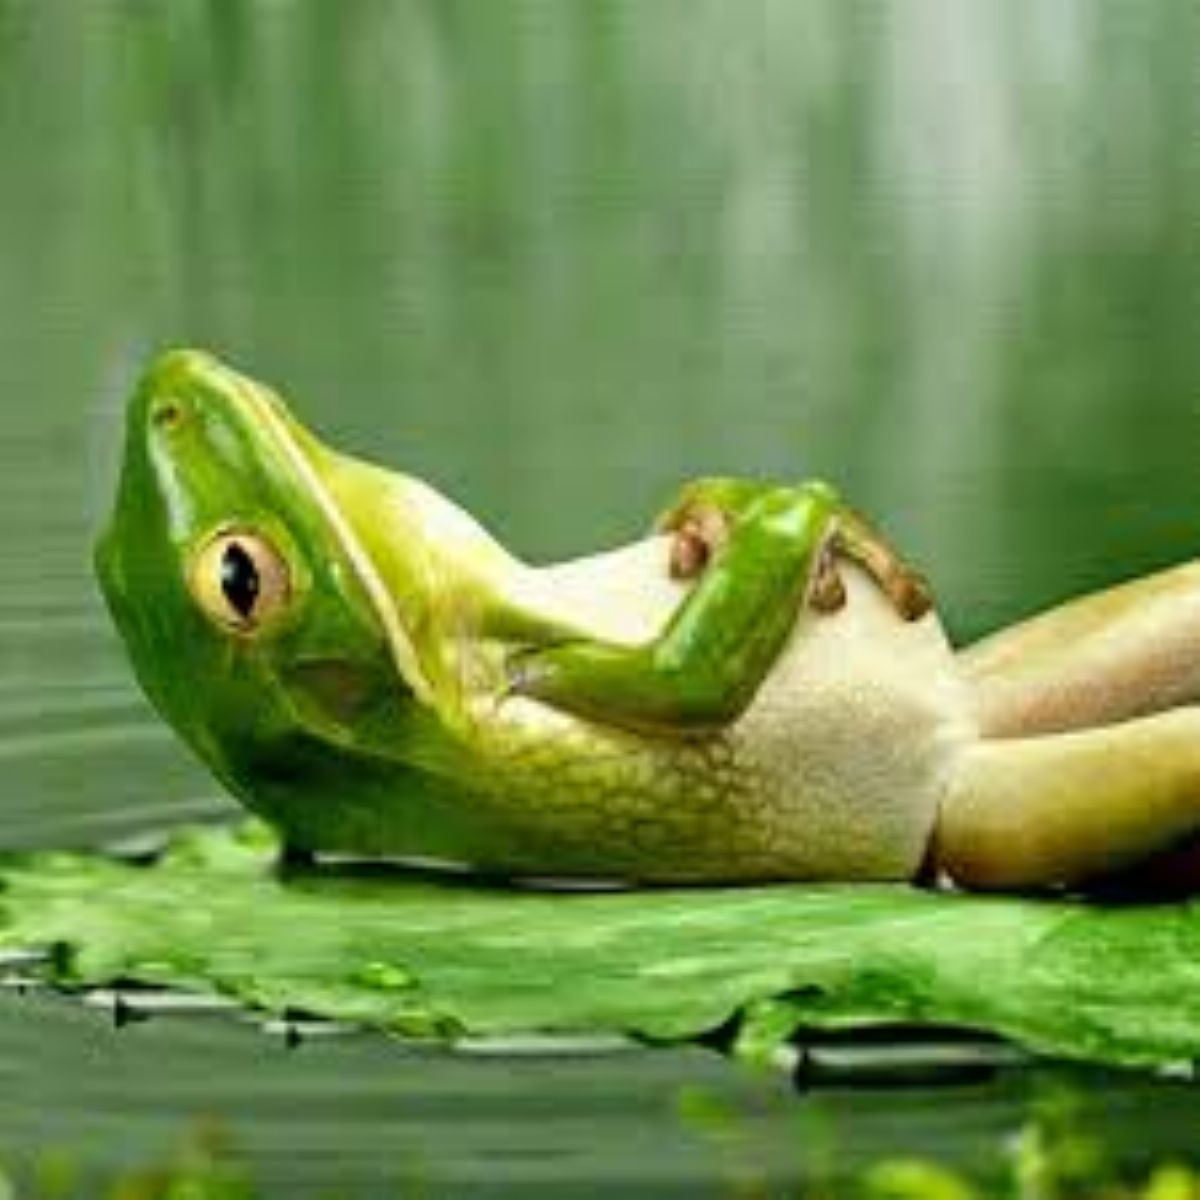 What does the frog dream about